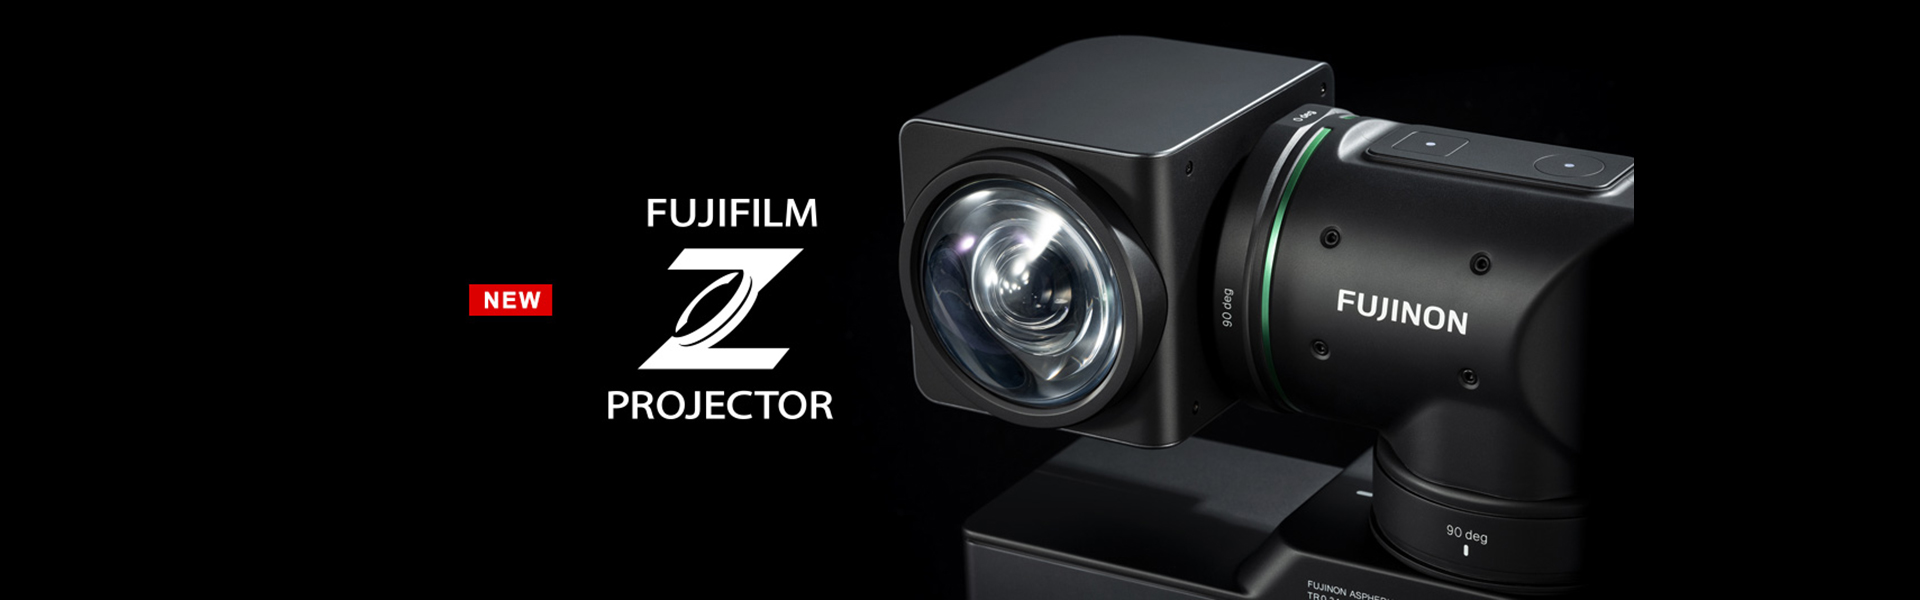 [photo] Fujifilm Z Projector FP-Z5000 in front of black background